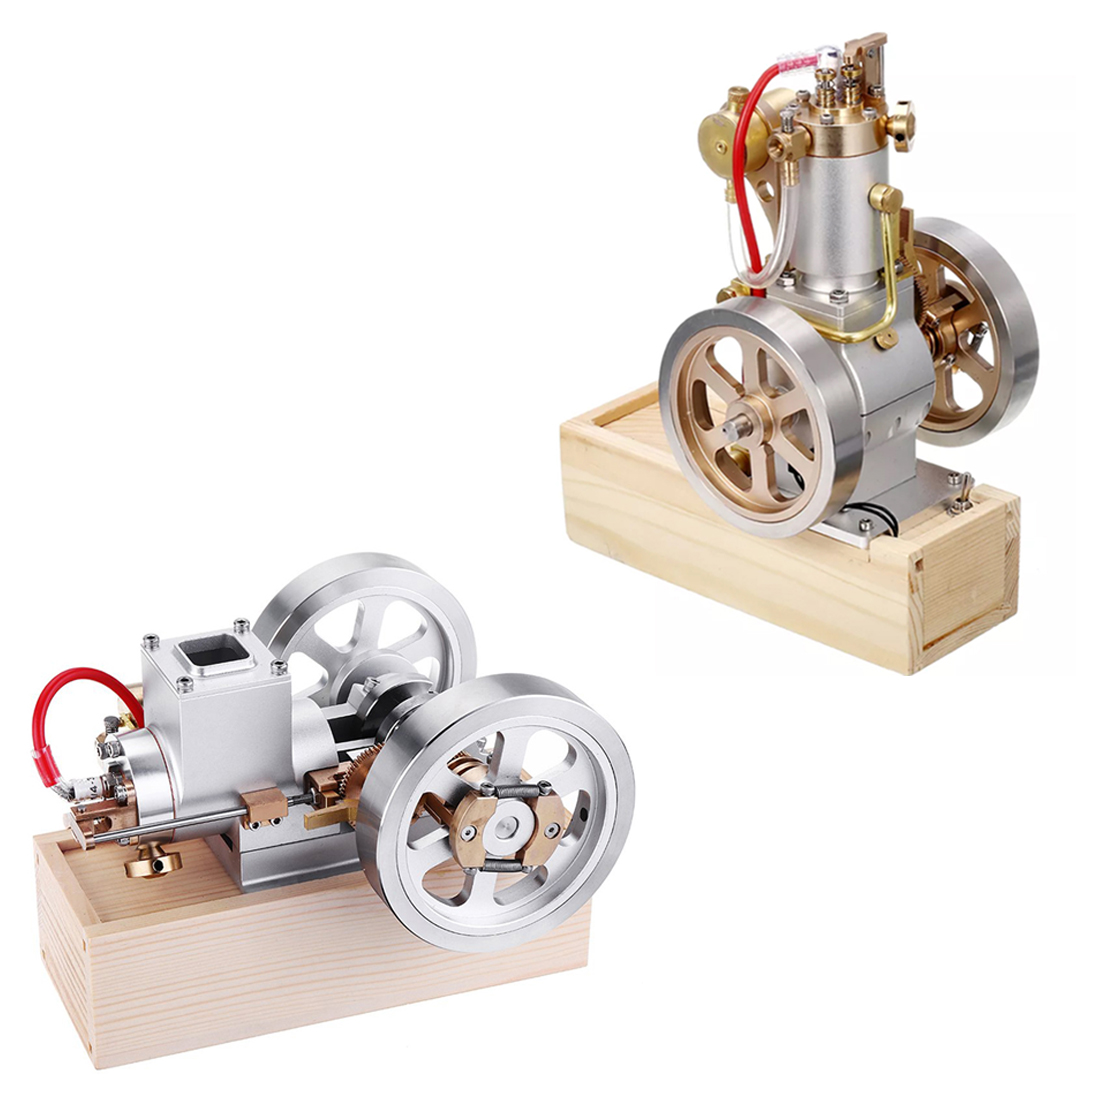 Metal Horizontal / Vertical Hit & Miss Complete Engine Model Gas Stirling Engine With Hand Start Device Combustion  Decoration